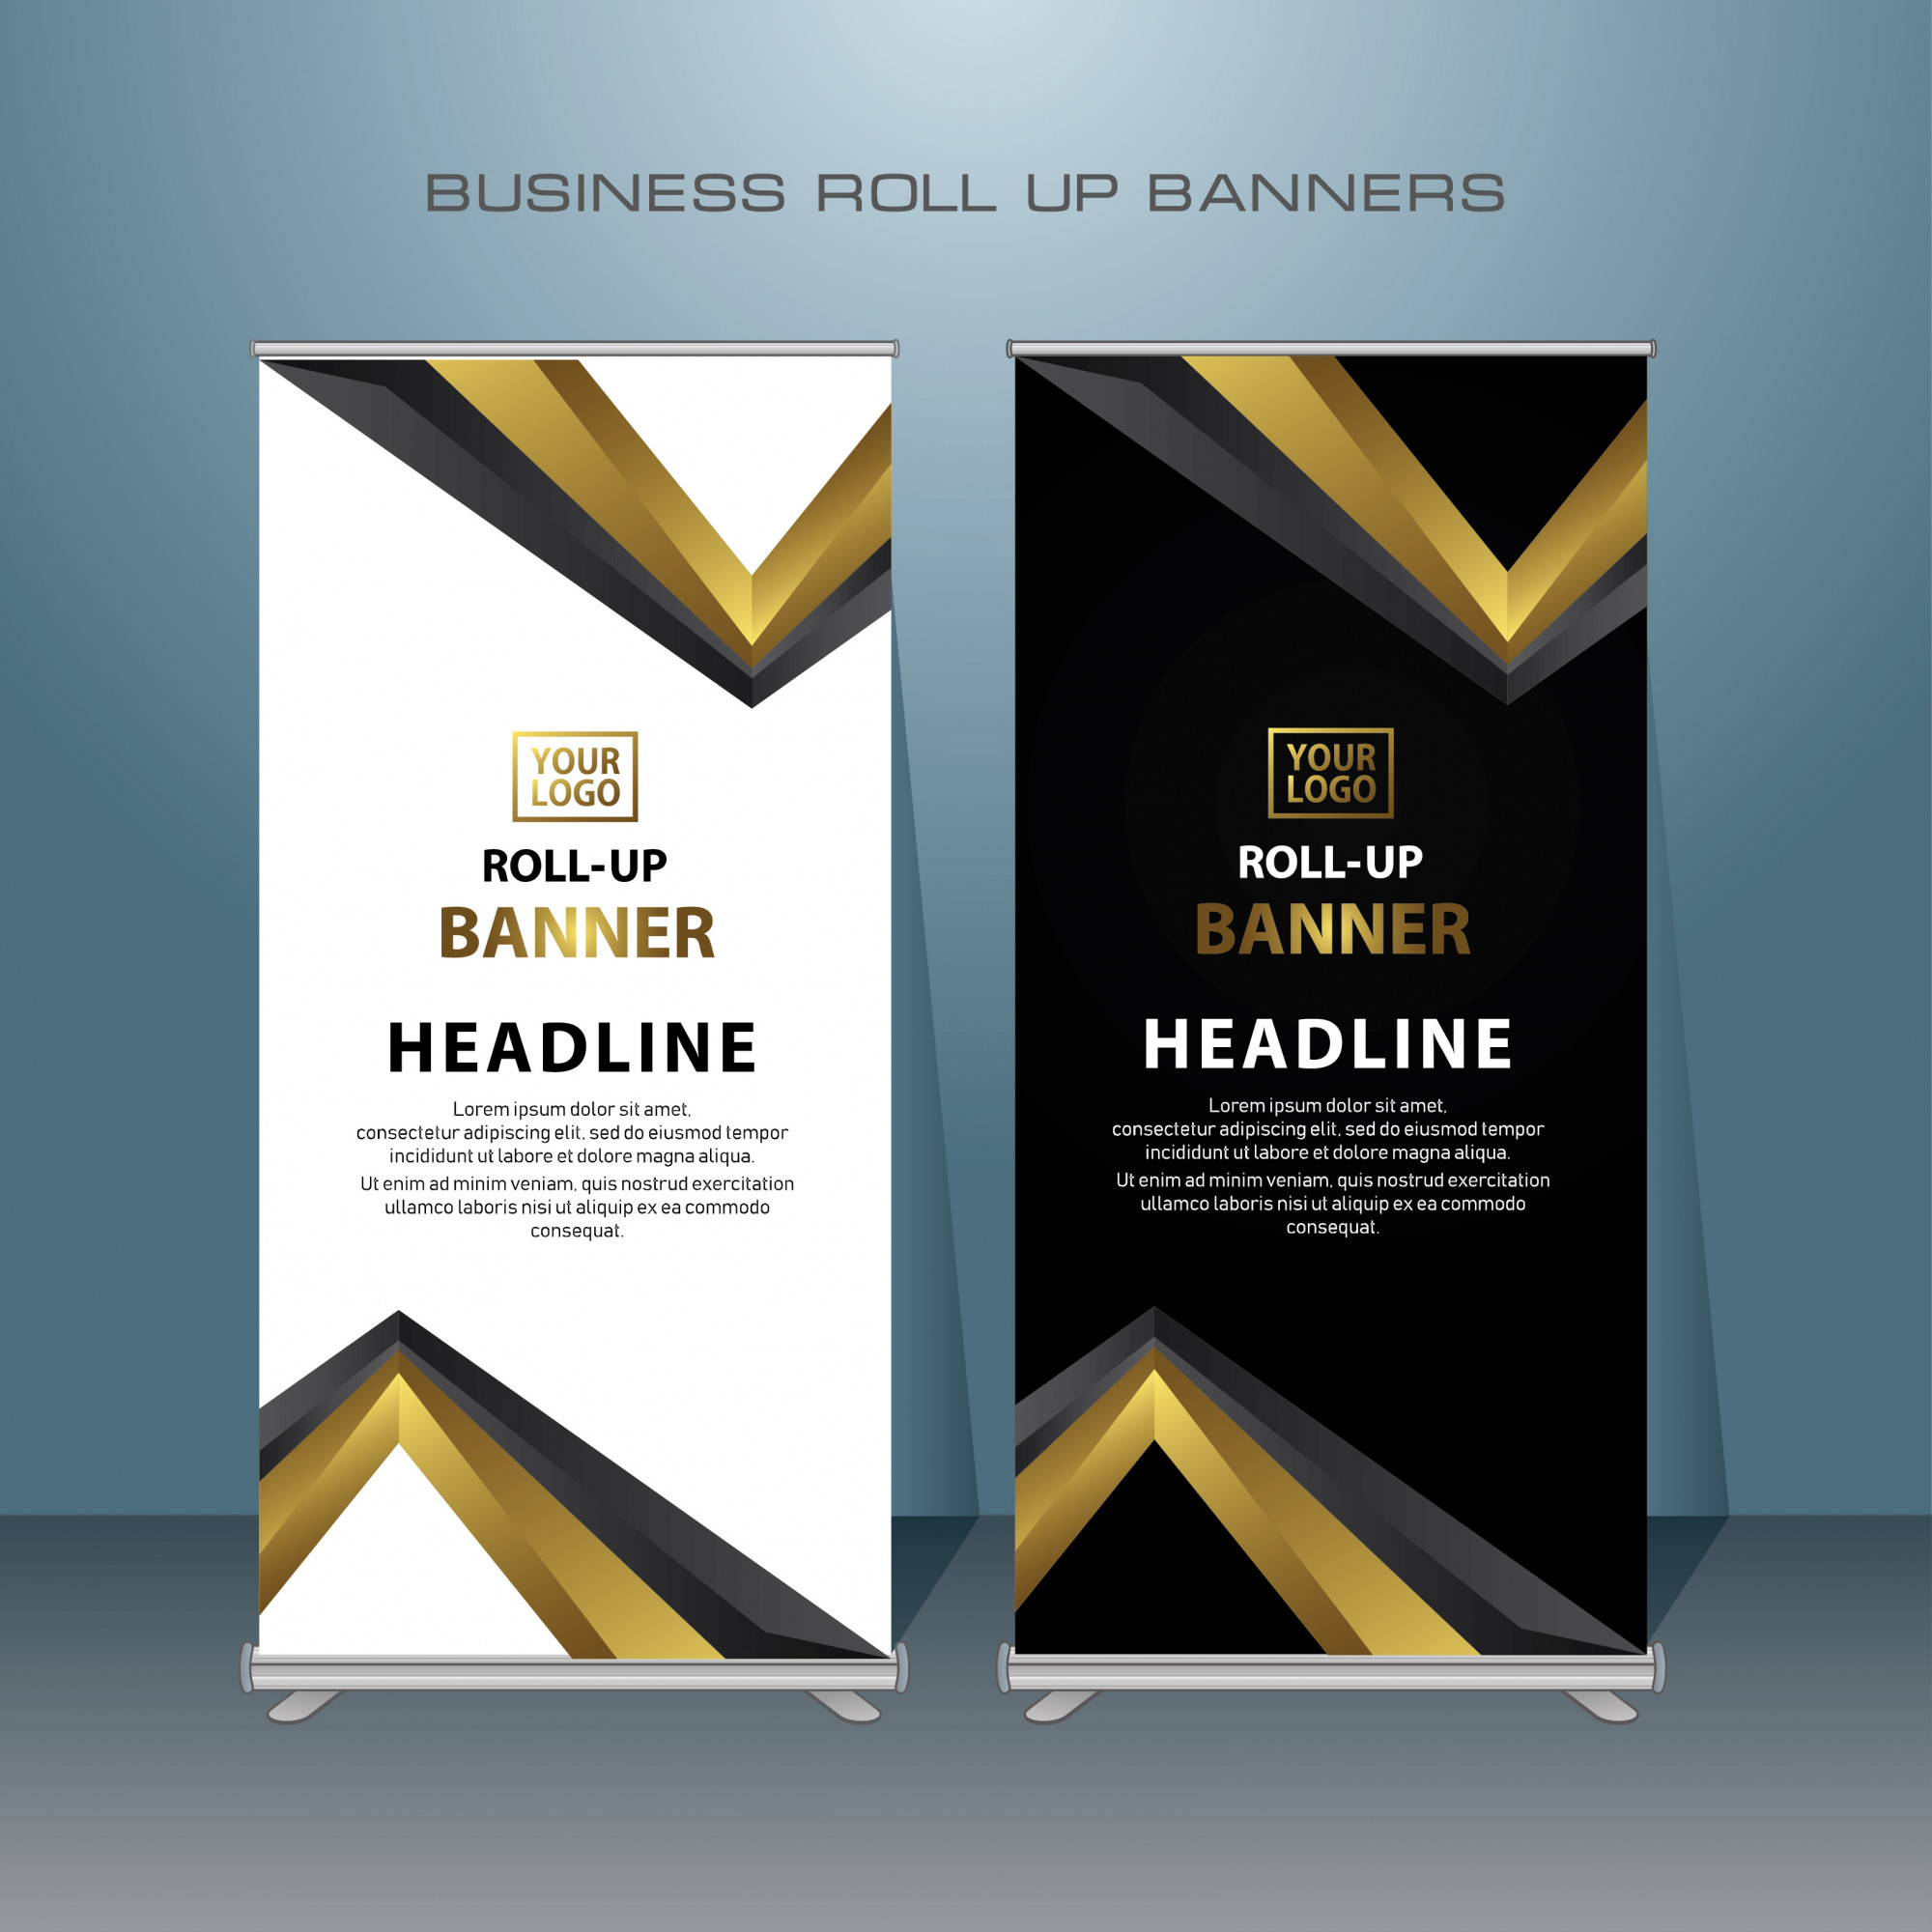 Creative Roll up banner design in gold color